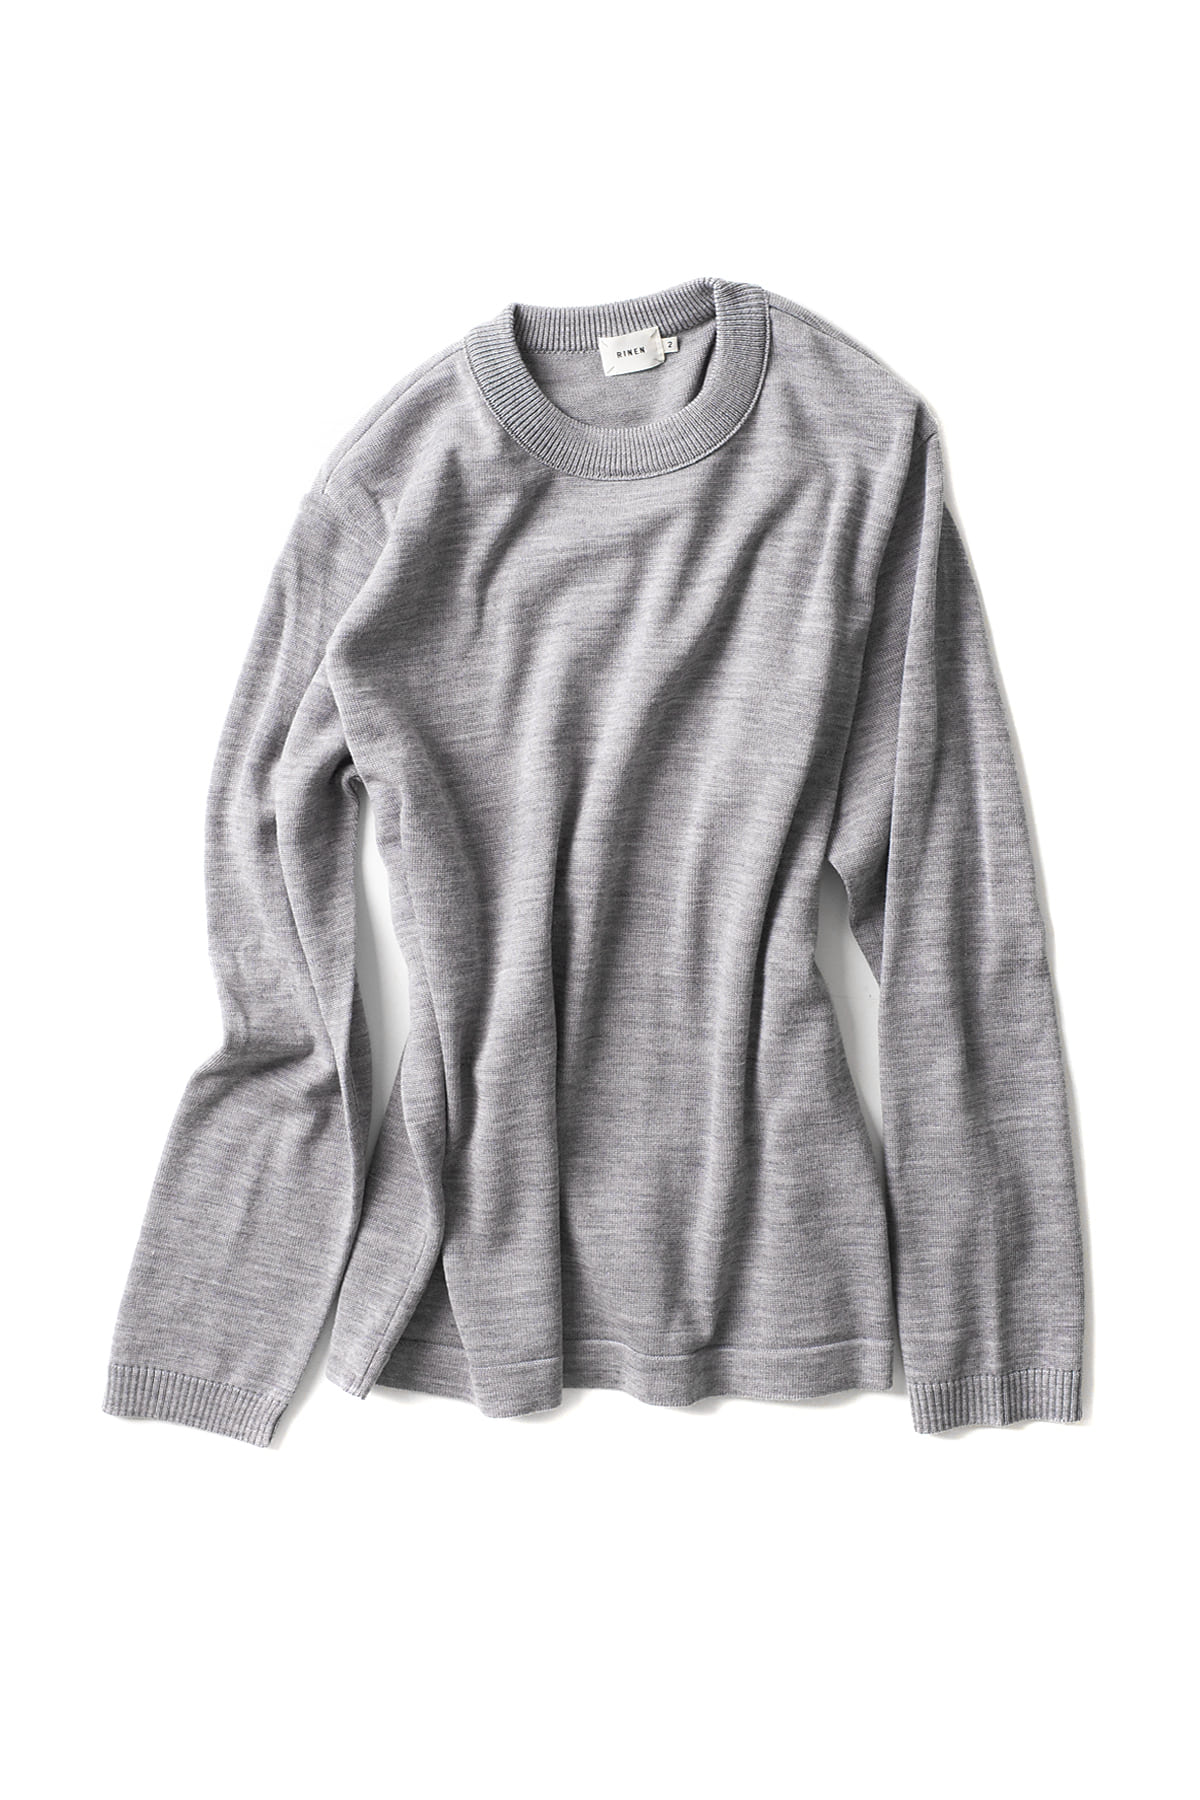 RINEN : Wool Knit Crewneck 13981 (Grey)